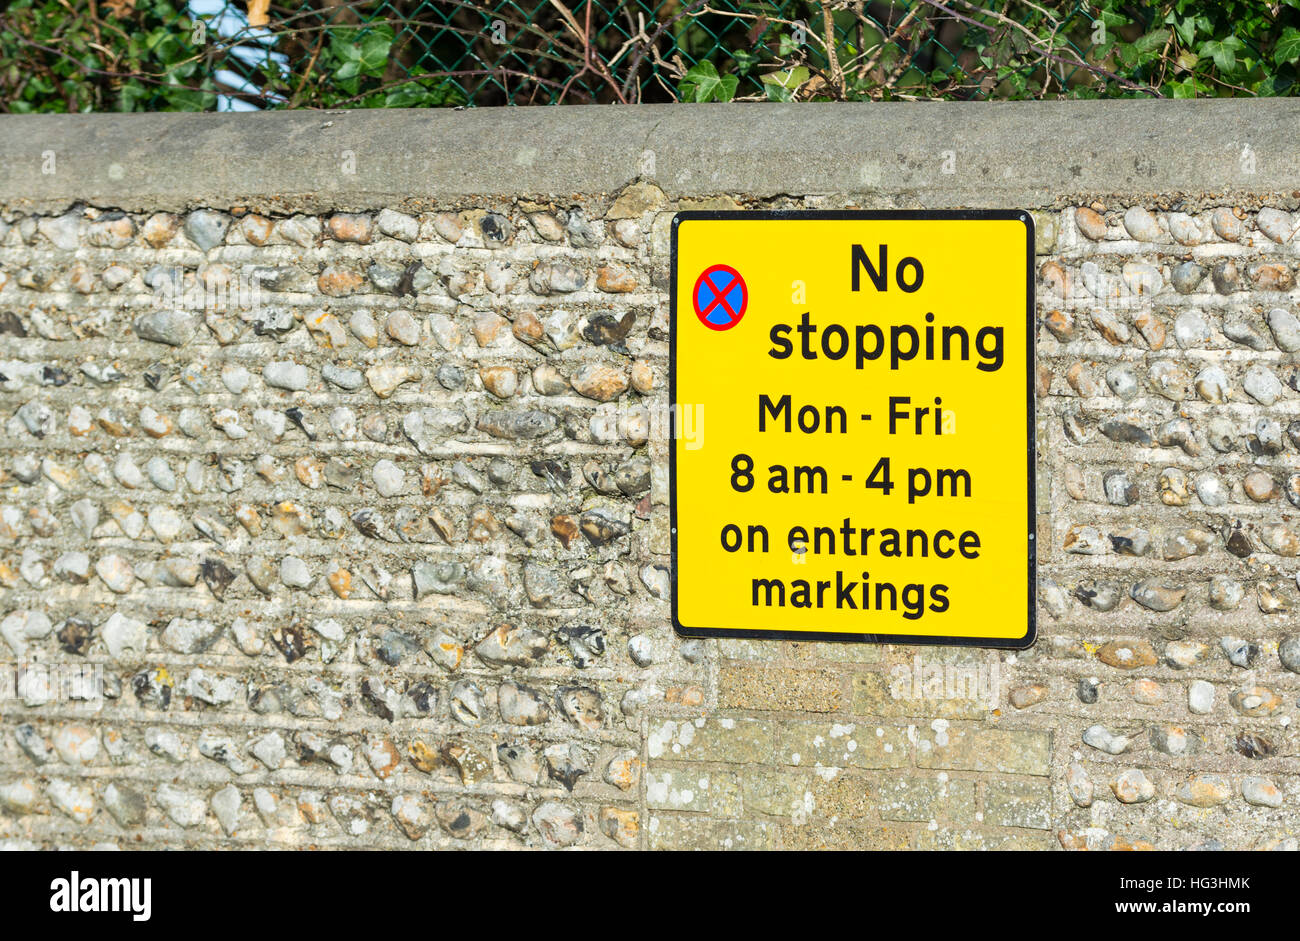 No stopping sign attached to a wall in the UK. - Stock Image